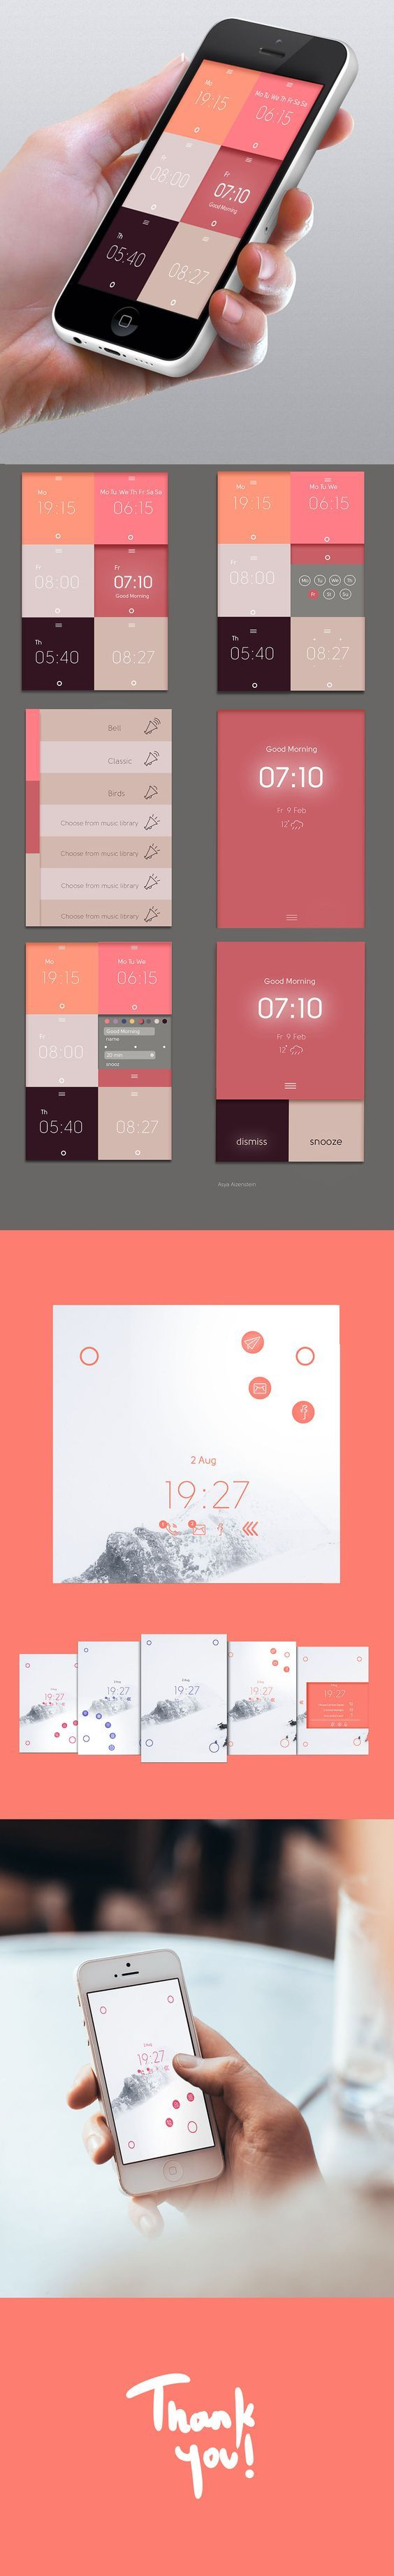 Collection of color palettes photoshop for ui designs web3canvas - I Like The Colour Scheme Here And The Geometrical Aspect To It Colours Compliment Each Other And Make The Design Stand Out And Catch Your Eye